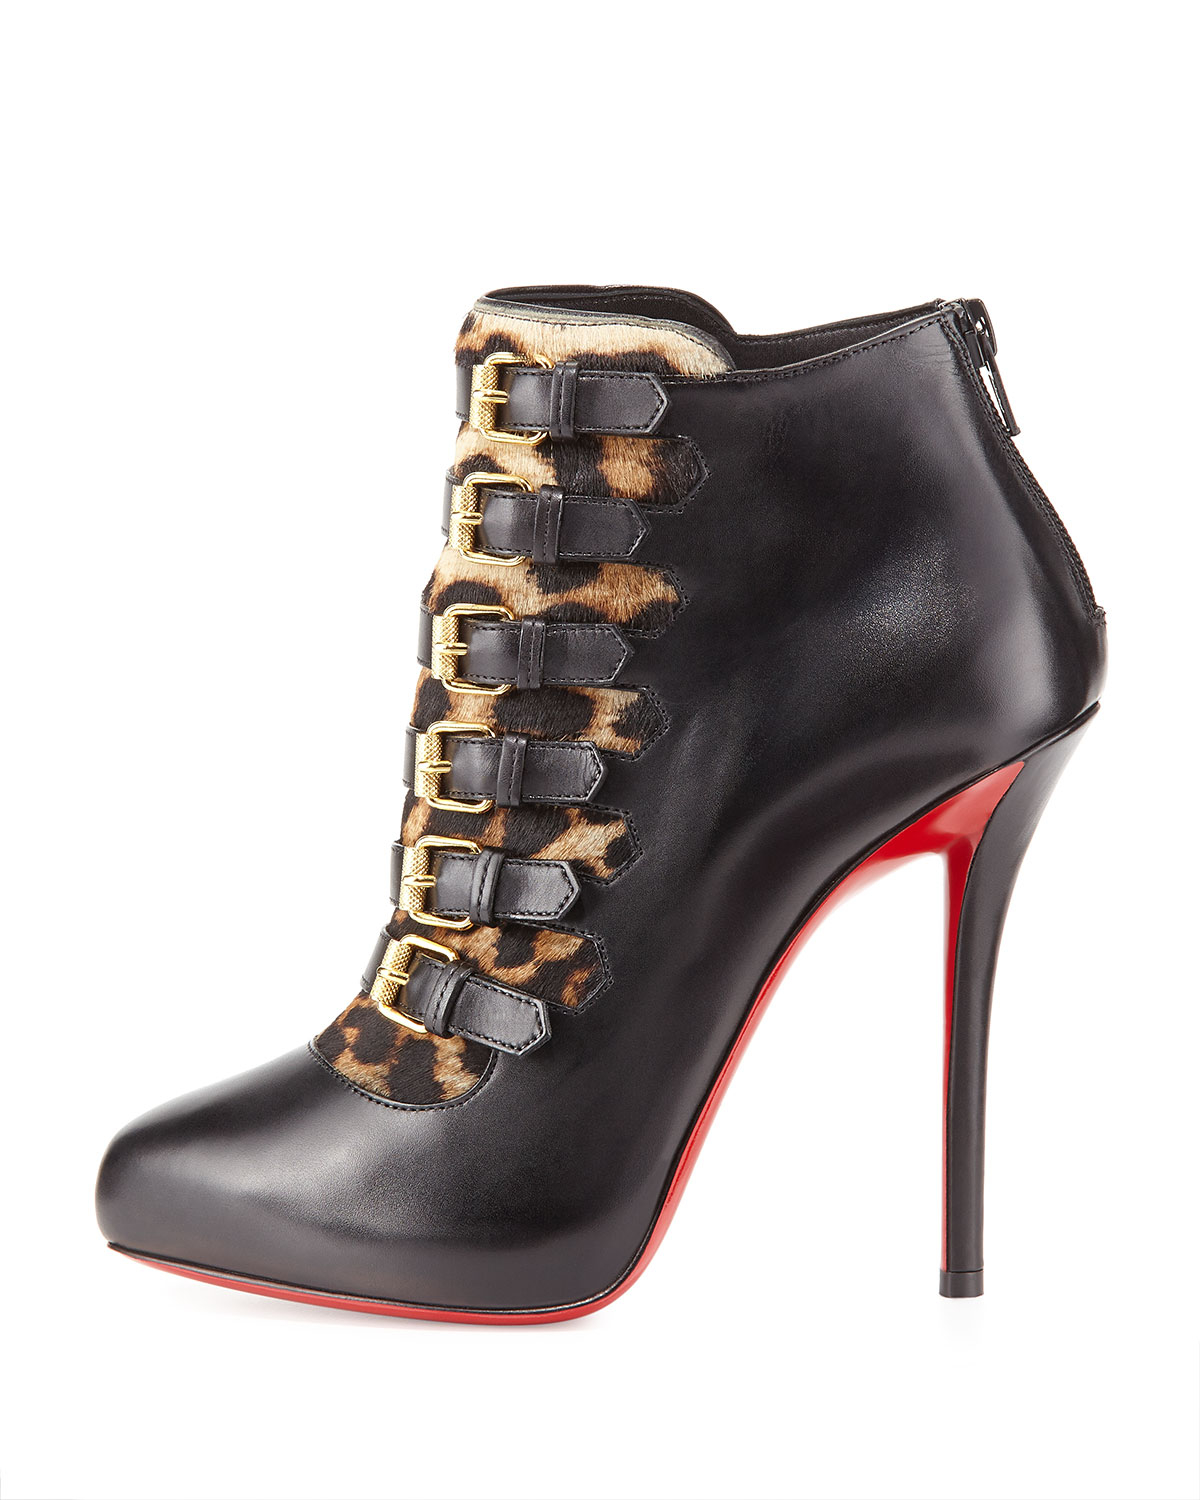 red and gold spiked louboutins - christian louboutin faolo platform bootie, replica flats